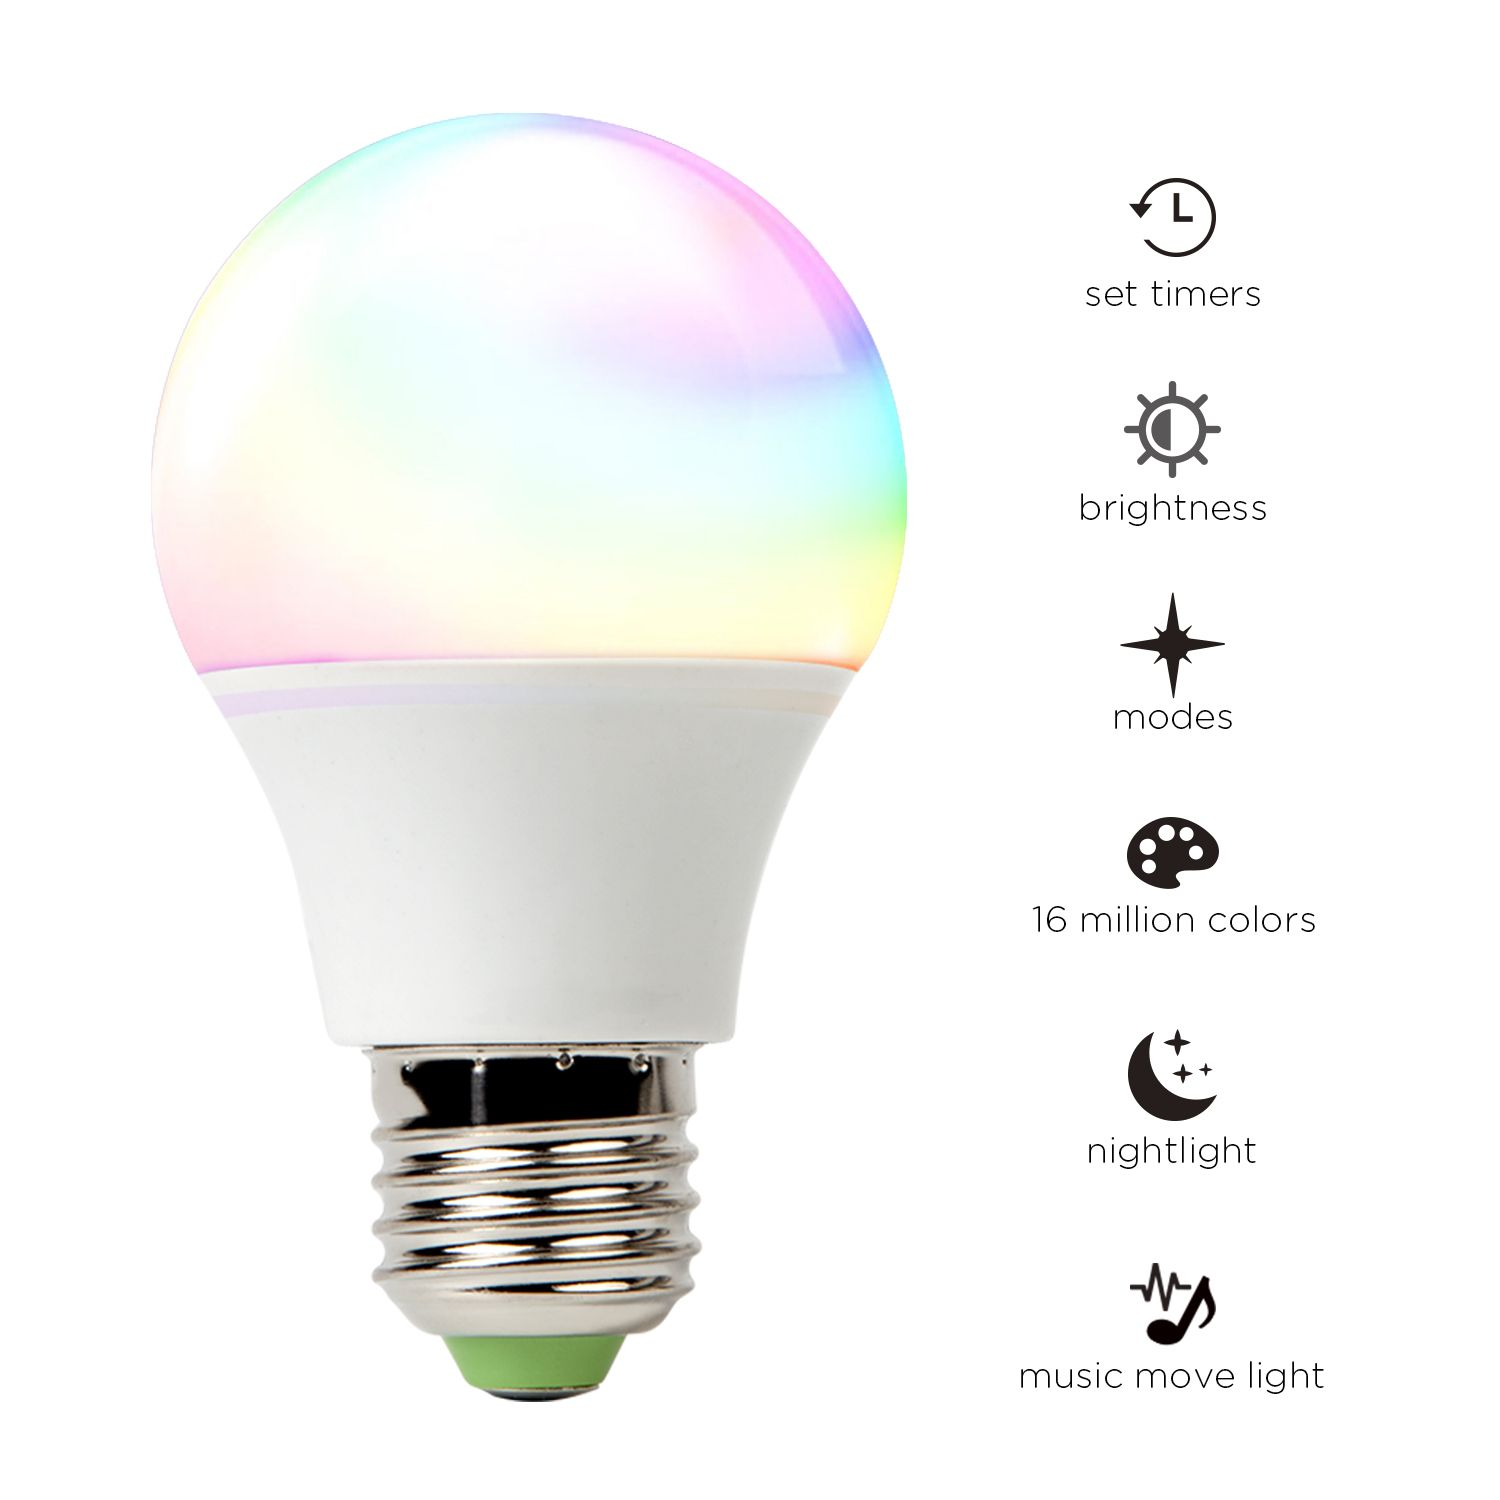 Why You Need To Change Your Bulb To A Smart One Because